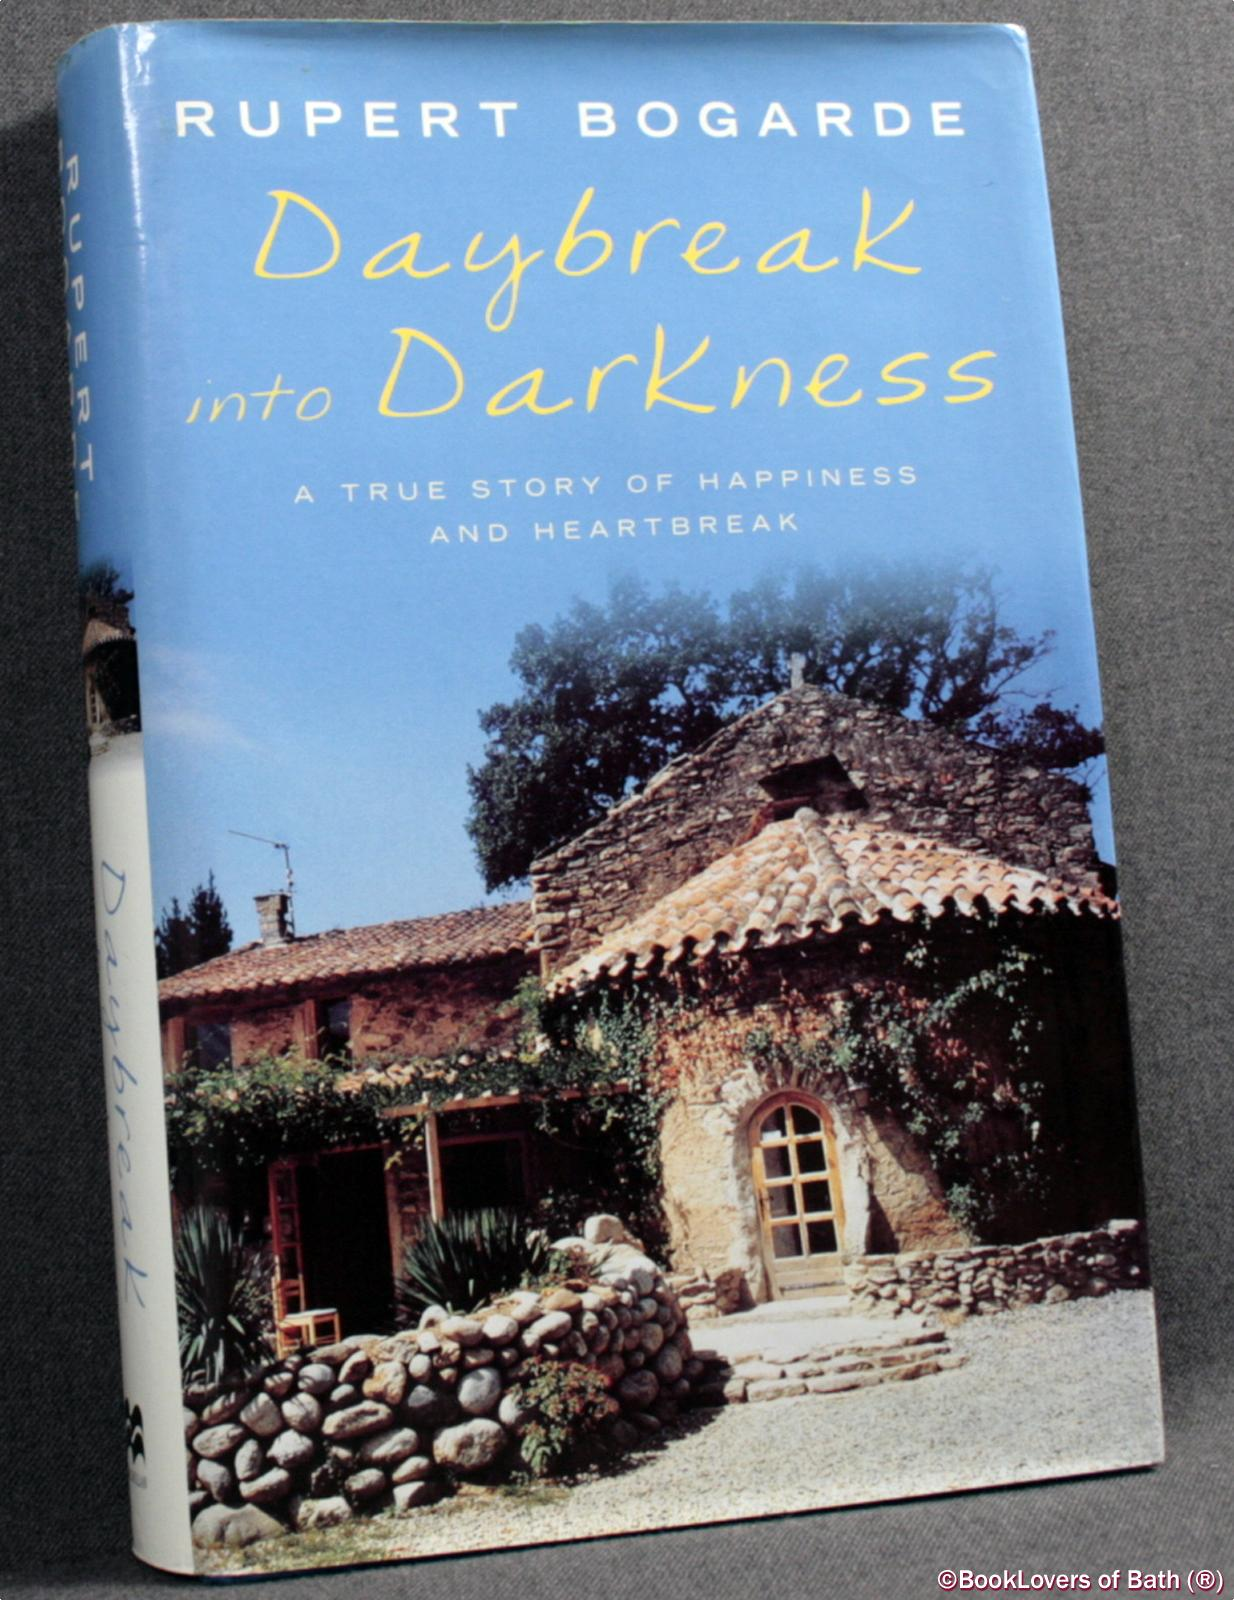 Daybreak Into Darkness: A True Story of Happiness and Heartbreak - Rupert Bogarde